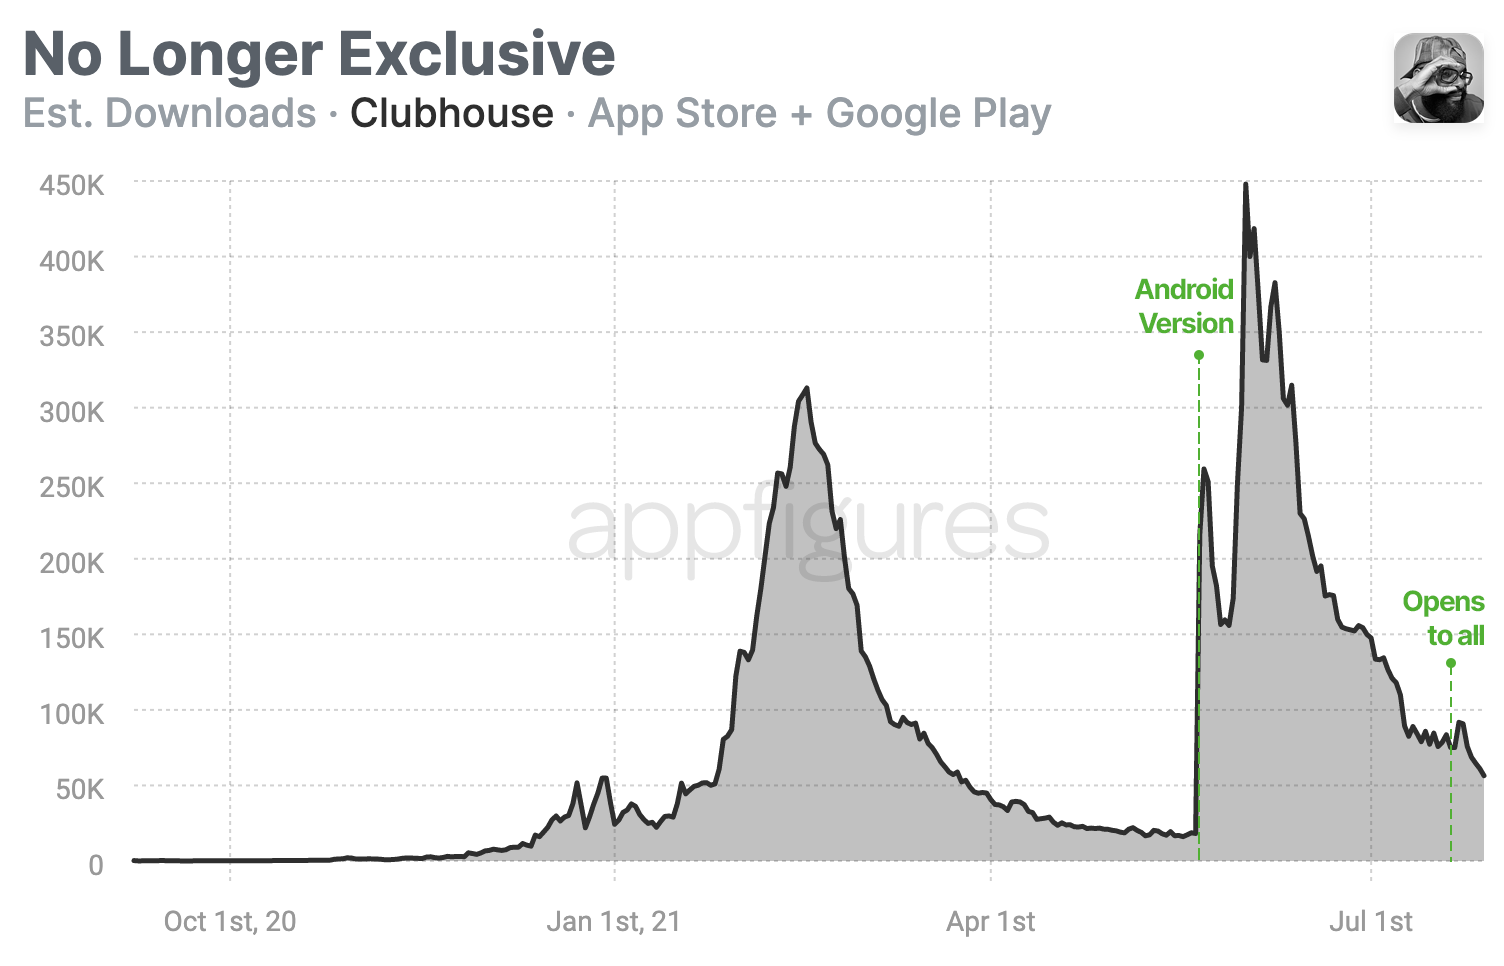 Downloads of Clubhouse